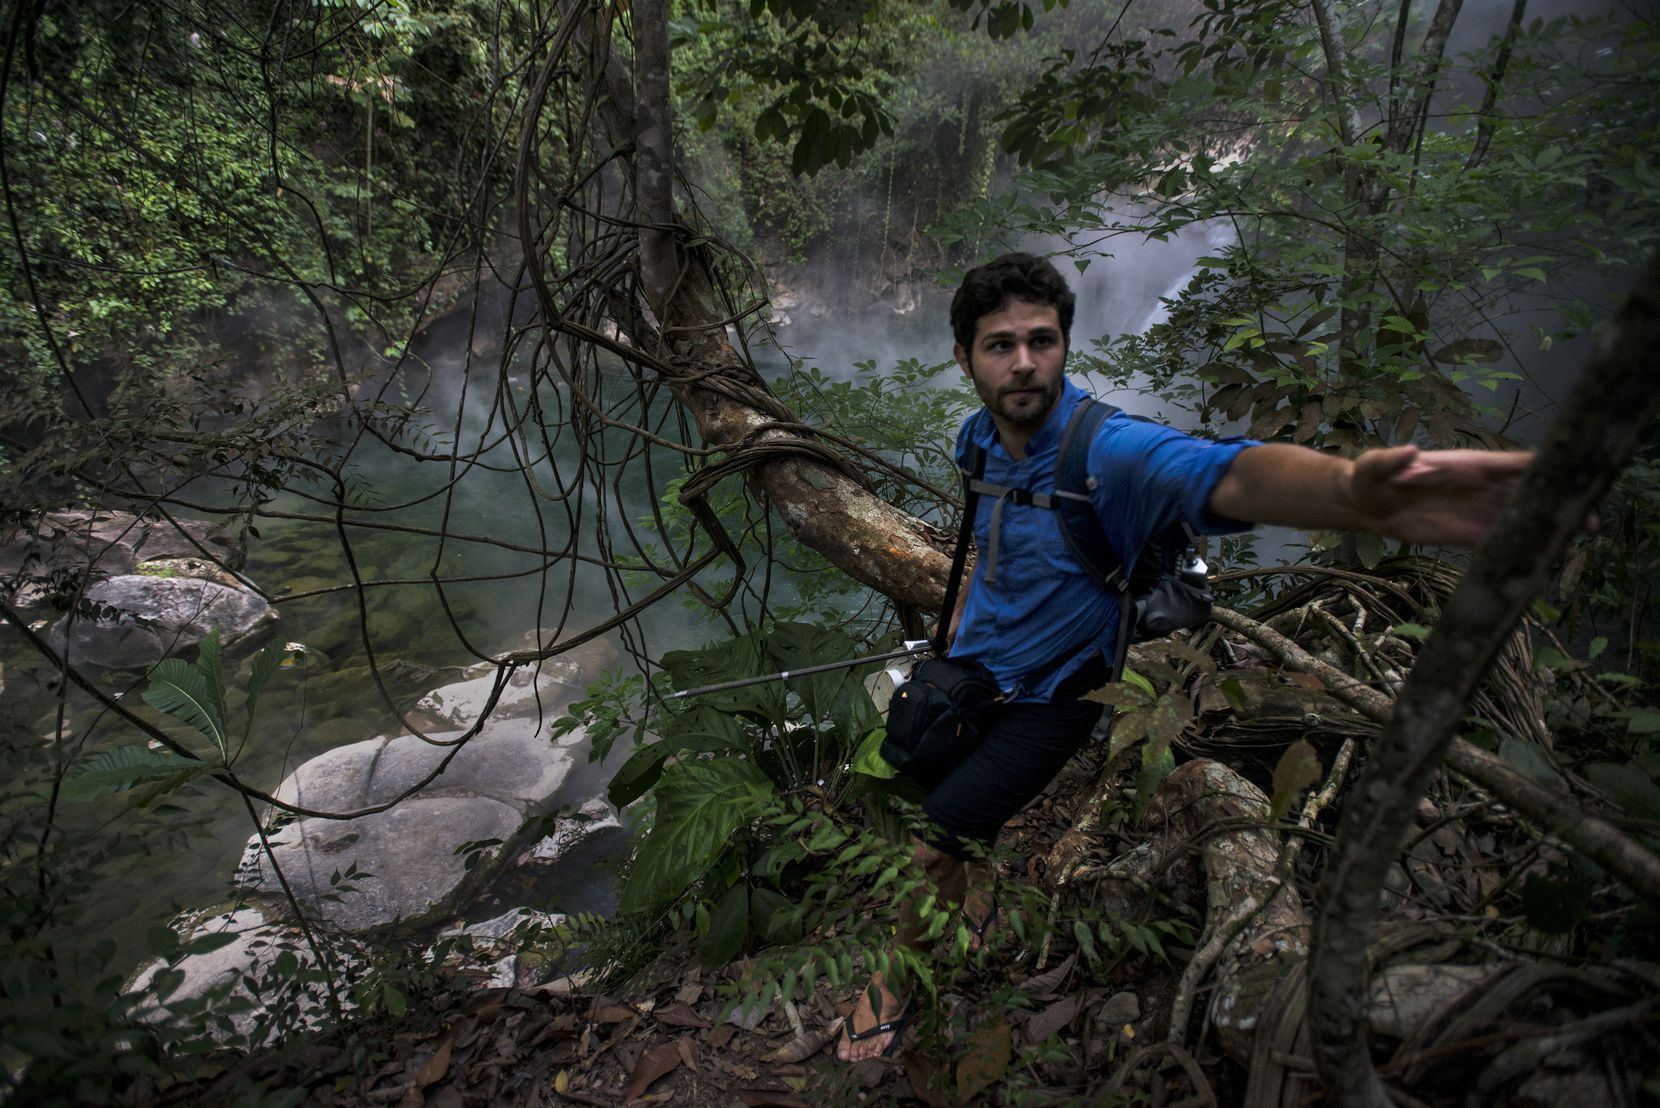 Andrés Ruzo is shown during his field work season in the Peruvian Amazon.